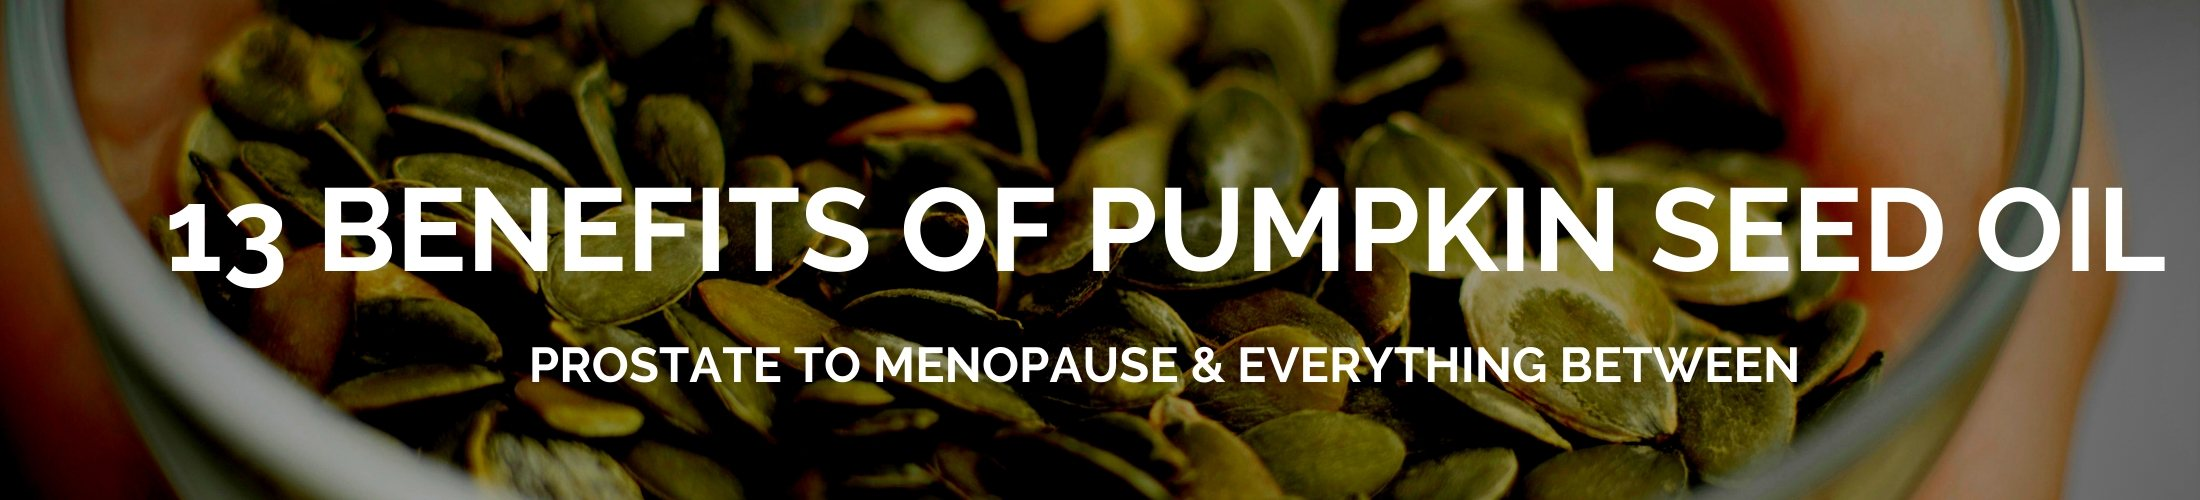 13 BENEFITS OF PUMPKIN SEED OIL: PROSTATE TO MENOPAUSE & EVERYTHING BETWEEN